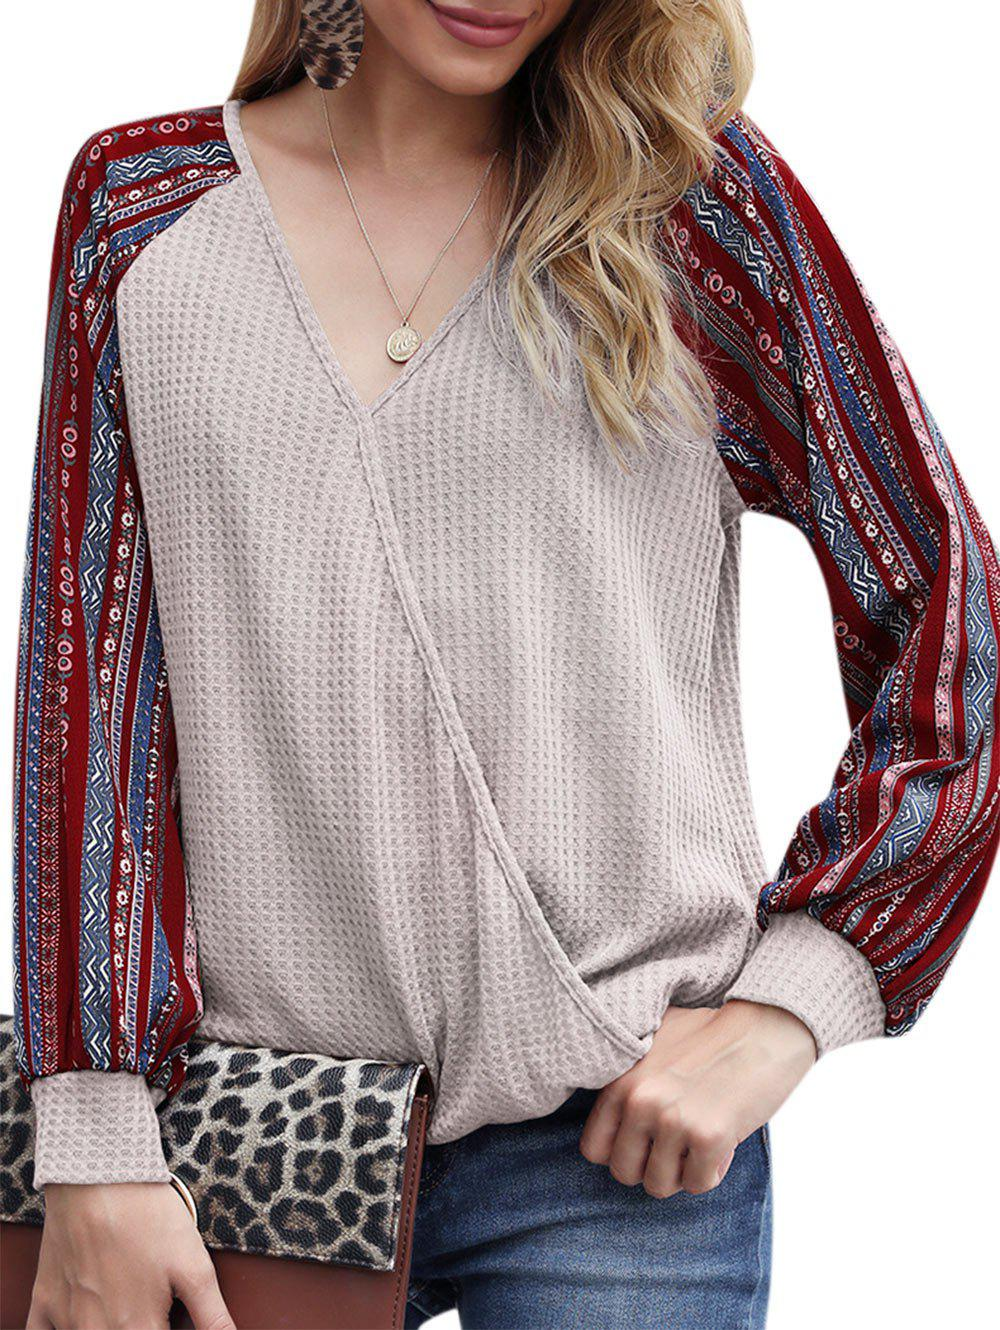 Fancy Tribal Print Raglan Sleeve Surplice Knitwear